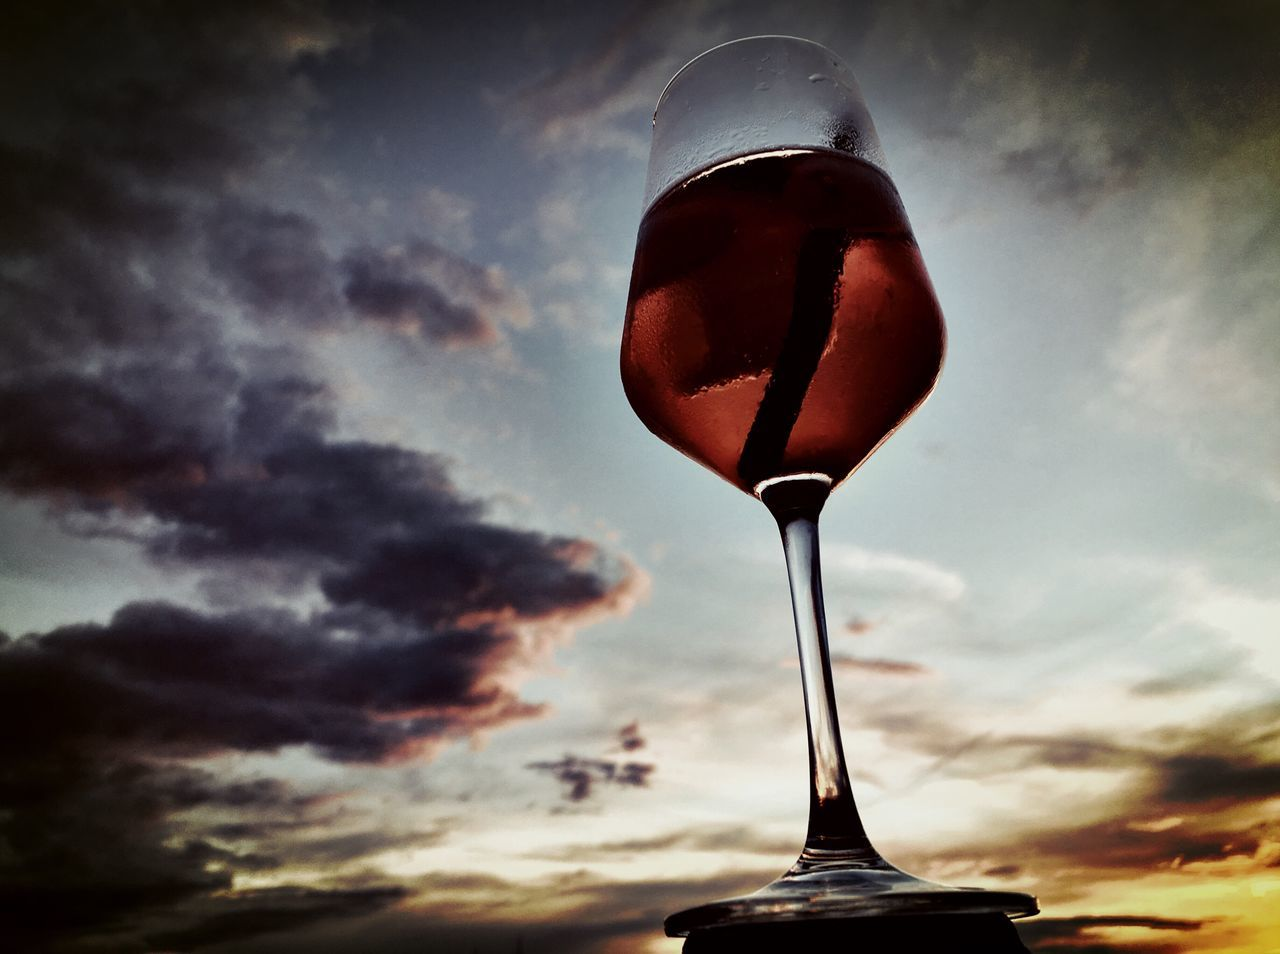 sky, food and drink, cloud - sky, sunset, alcohol, drink, no people, refreshment, wineglass, outdoors, drinking glass, close-up, freshness, beauty in nature, nature, day